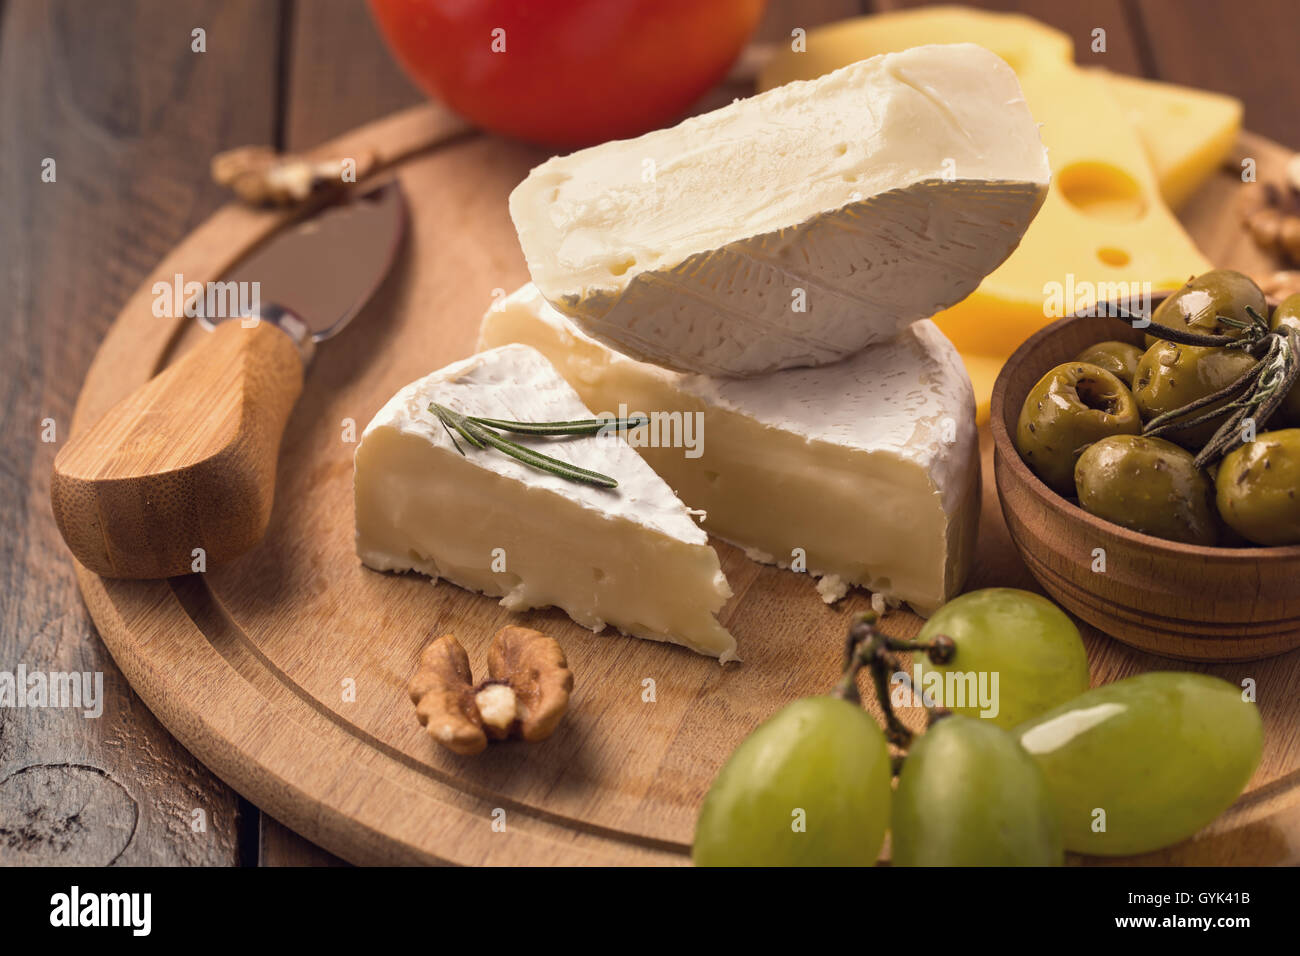 Sliced brie cheese - Stock Image